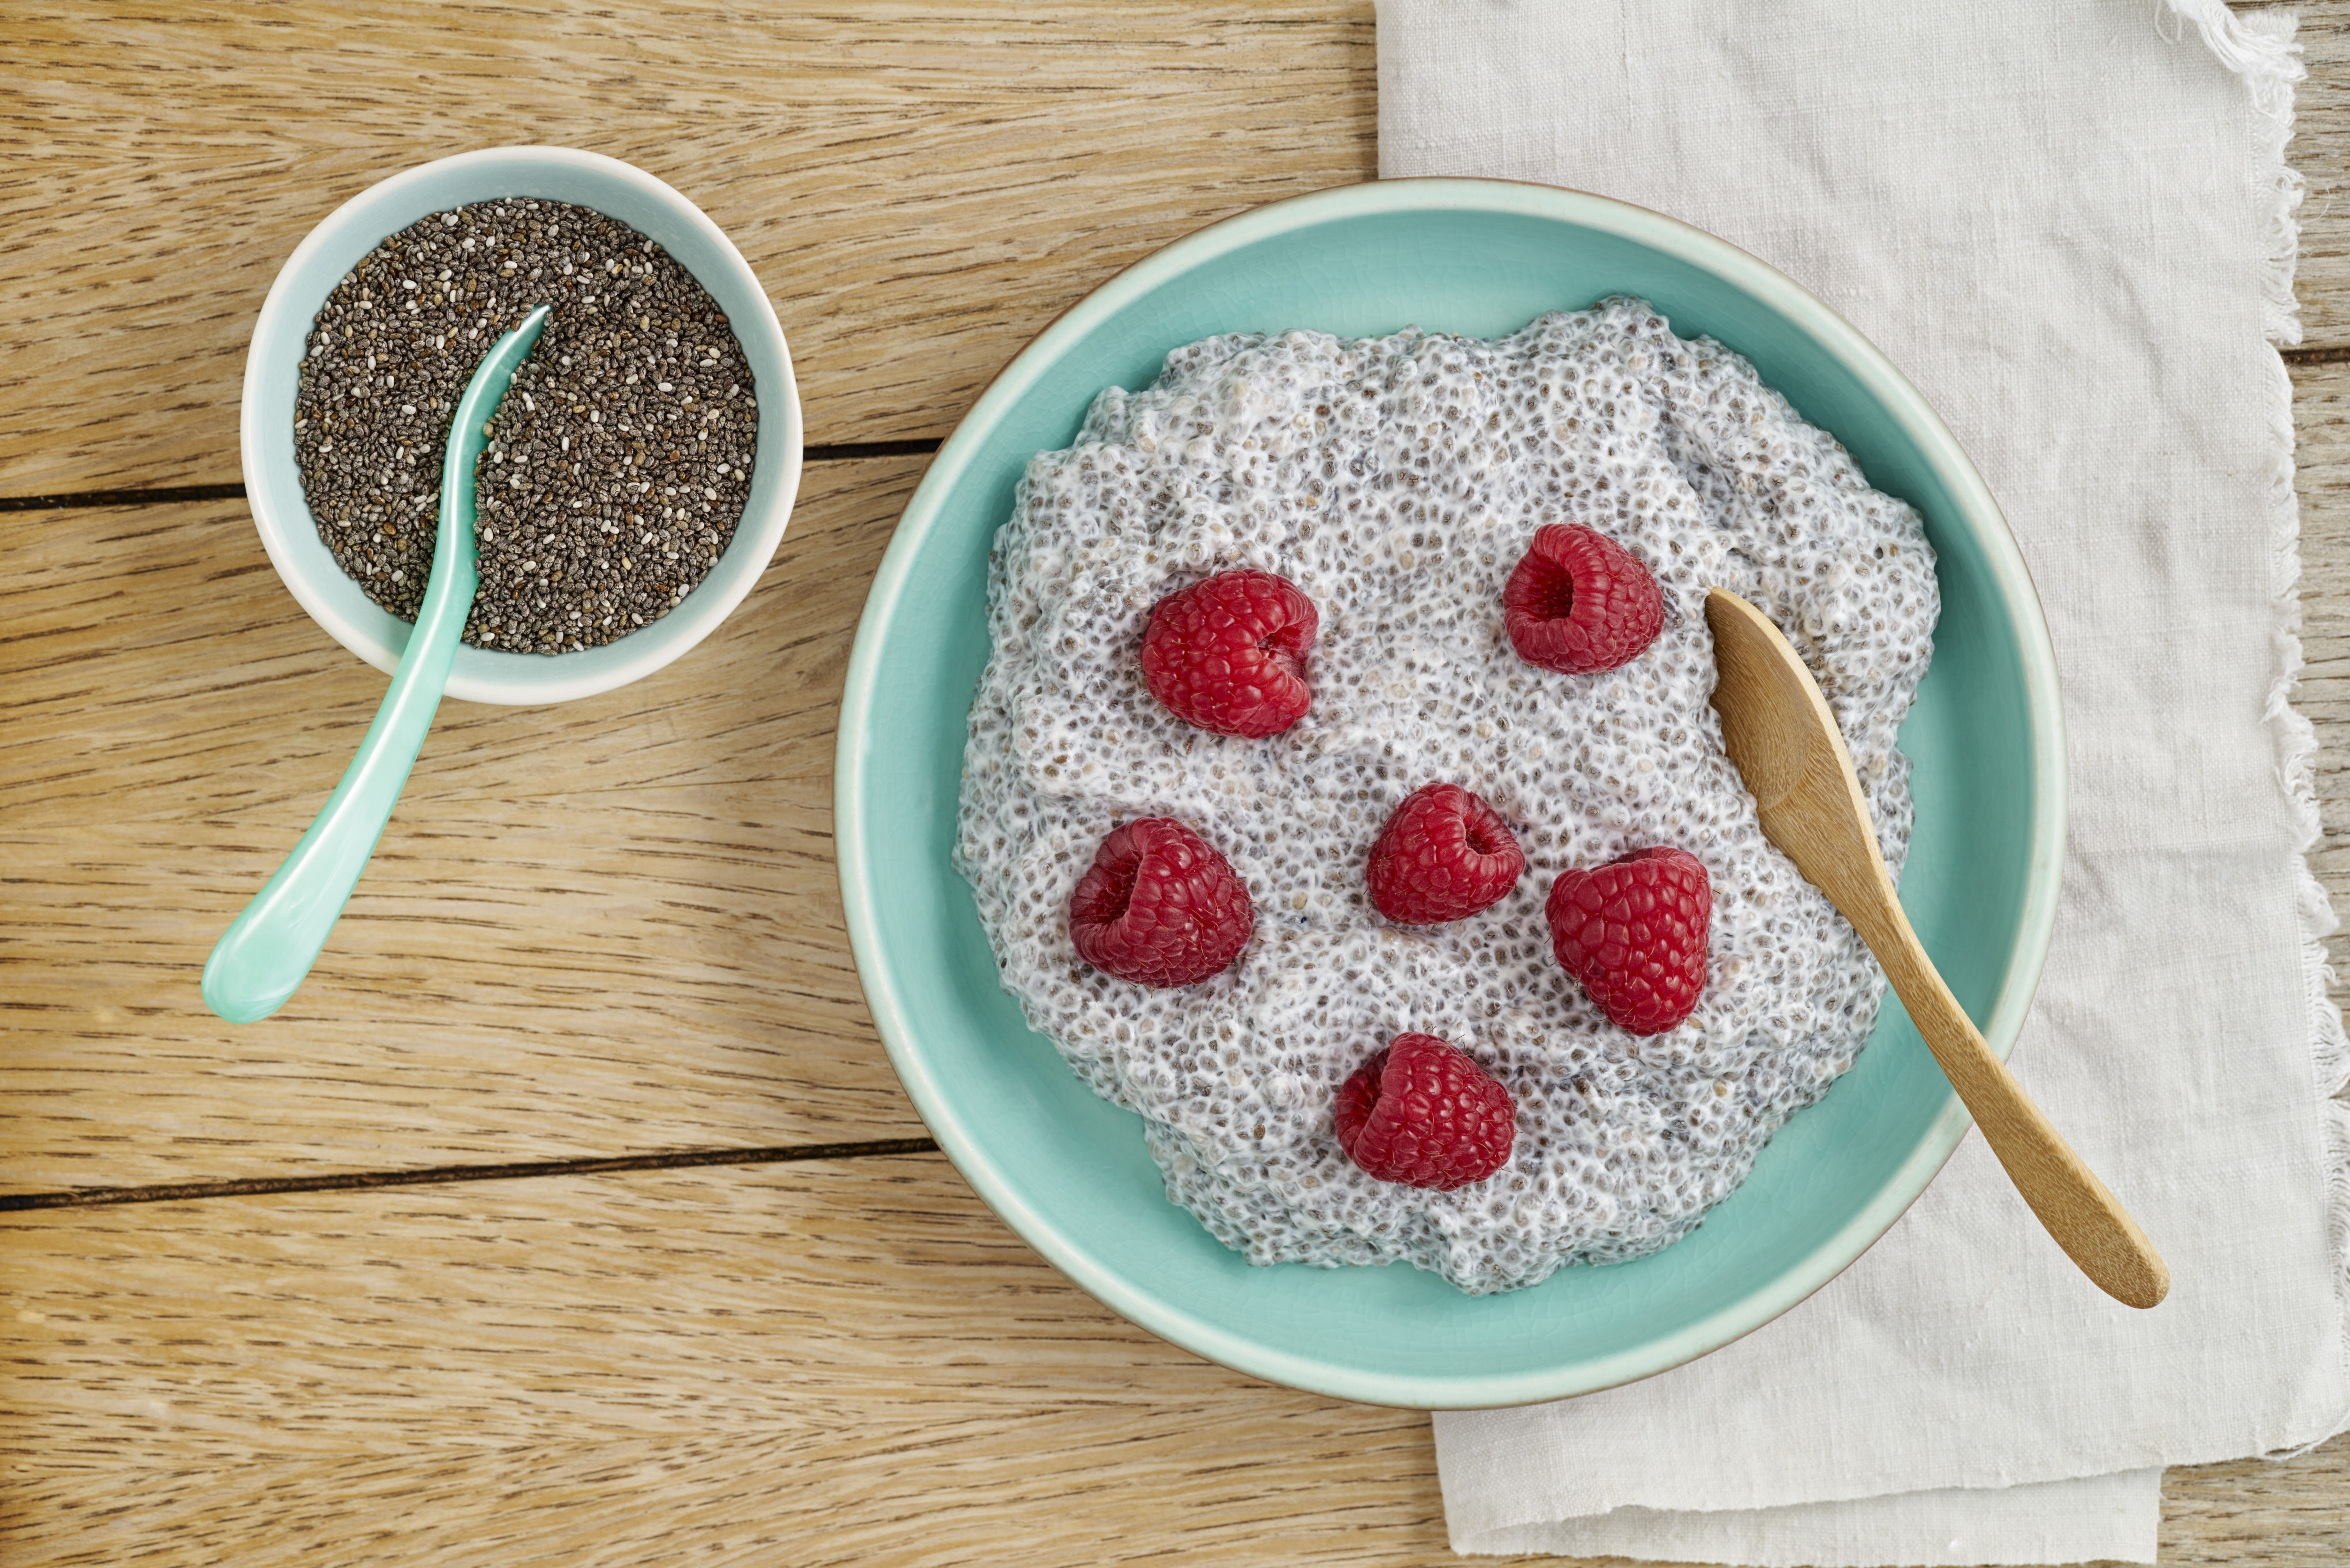 Chia pudding made of chia seeds with almond milk and raspberries